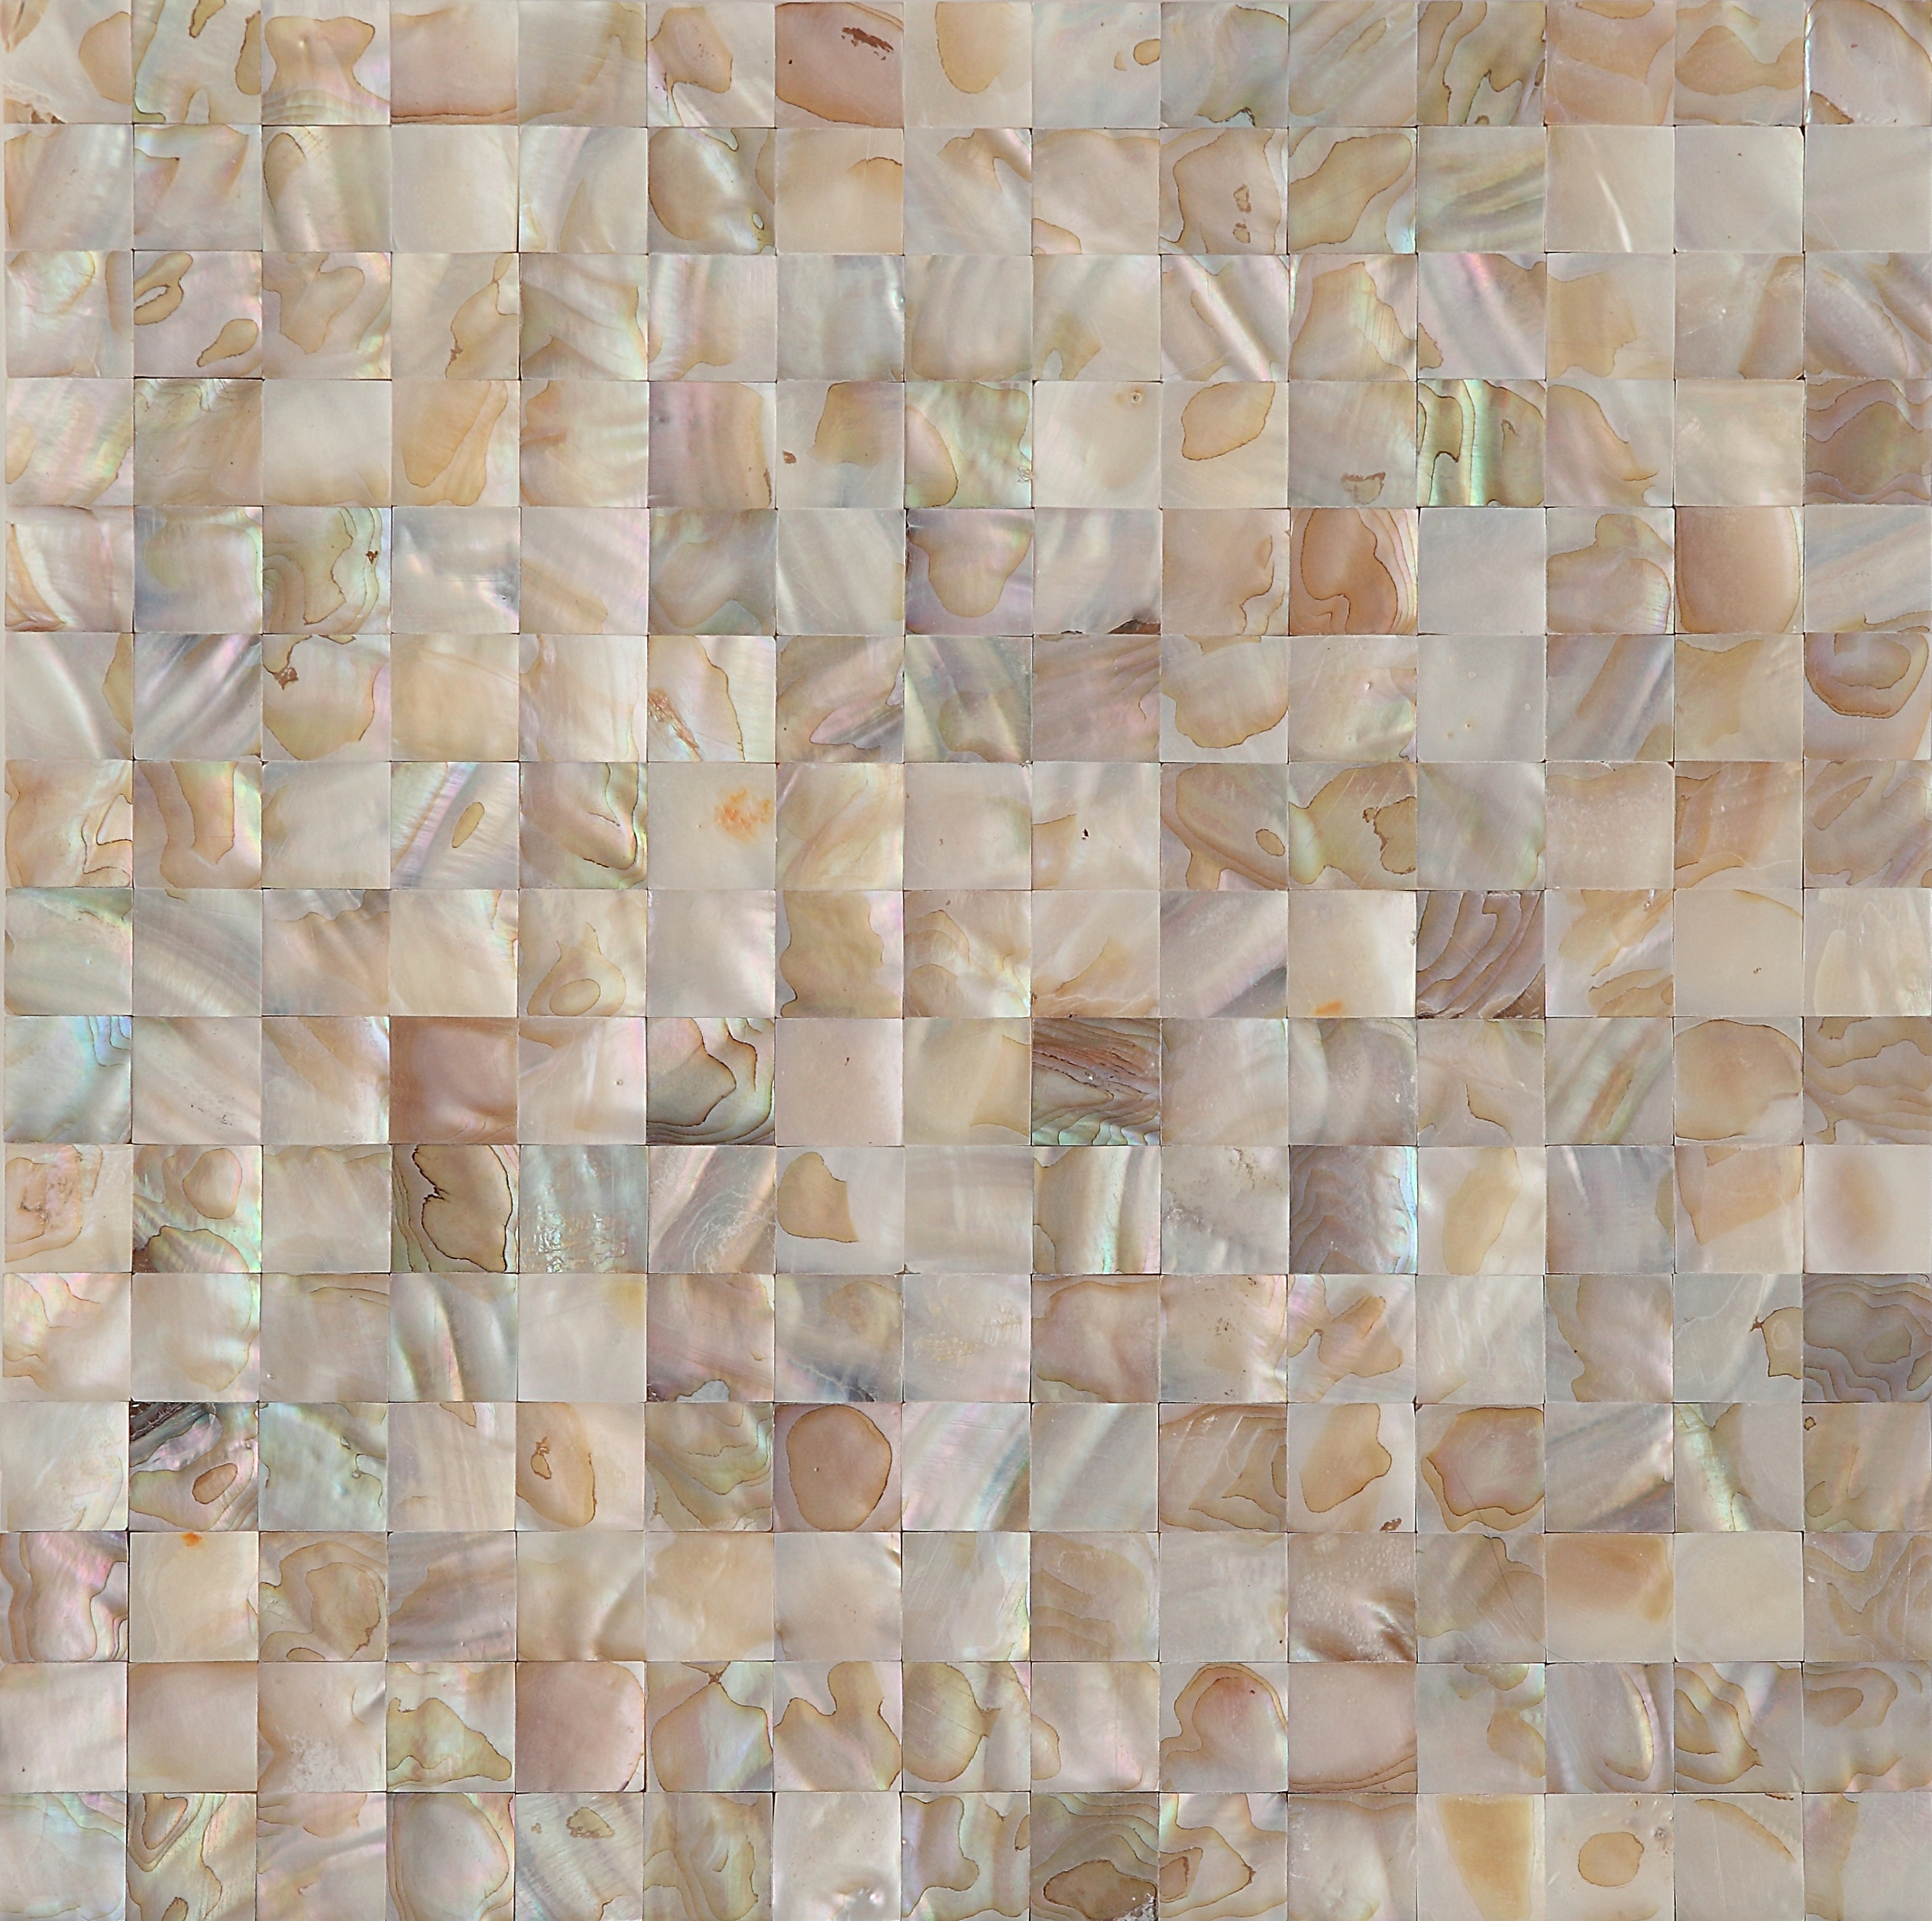 US $10.99 |Self Adhesive Natural Mother of Pearl Mosaic Tile,Kitchen  Backsplash Tile,LSMP01-in Wallpapers from Home Improvement on AliExpress